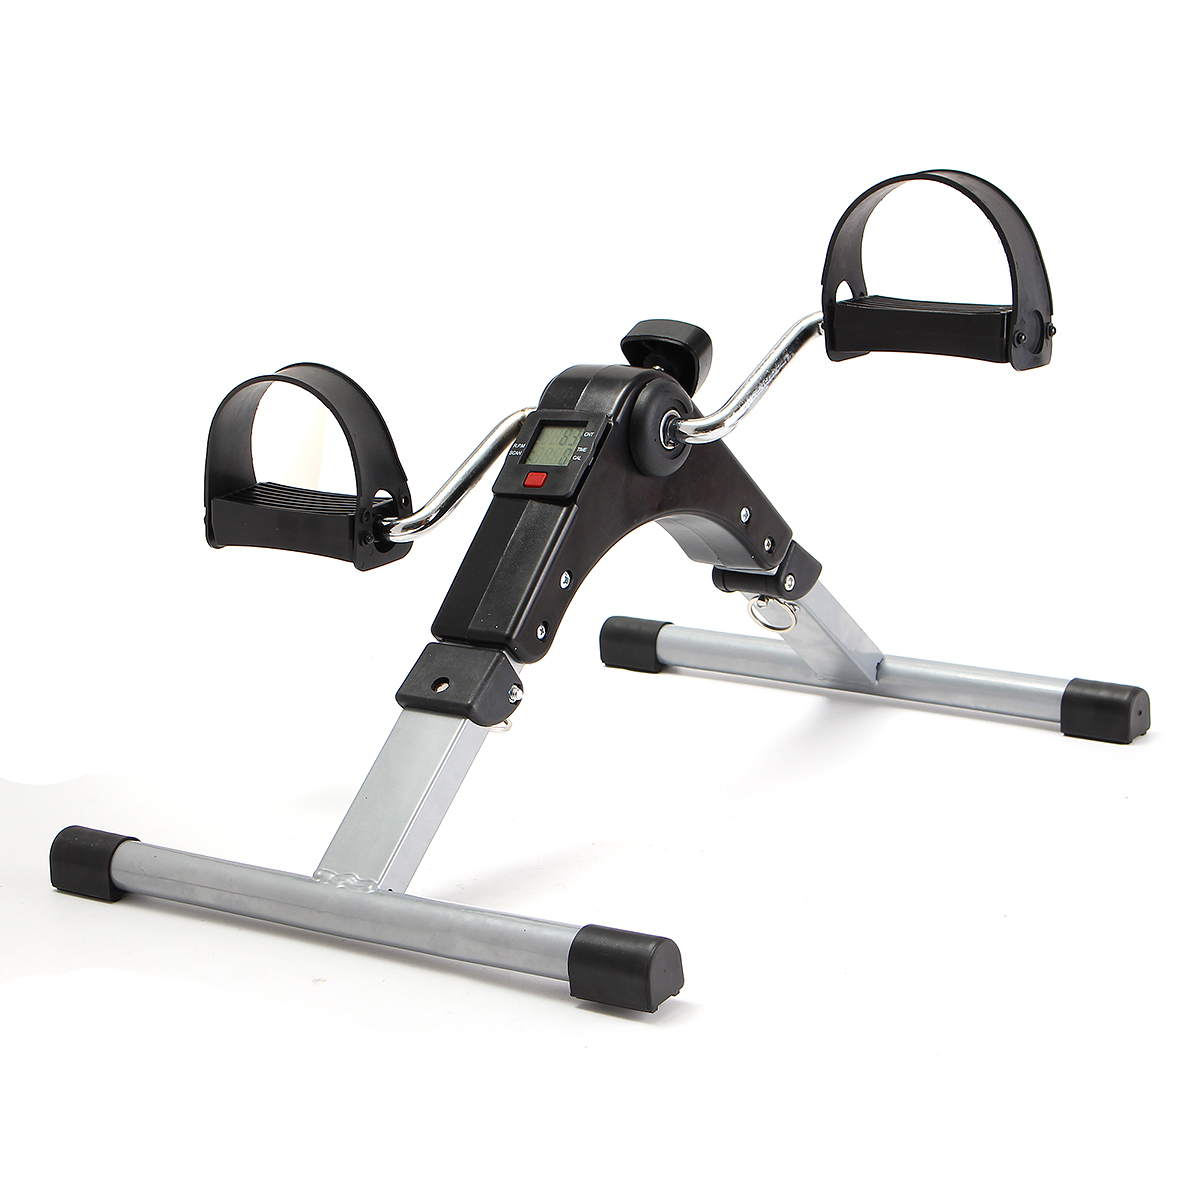 Proactive Rehabilitation Health Mobility Trainer training Arm and Leg Exercise Bike Fitness Adjust Resistance Display Calories cycling trainer home training indoor exercise 26 28 magnetic resistances bike trainer fitness station bicycle trainer rollers